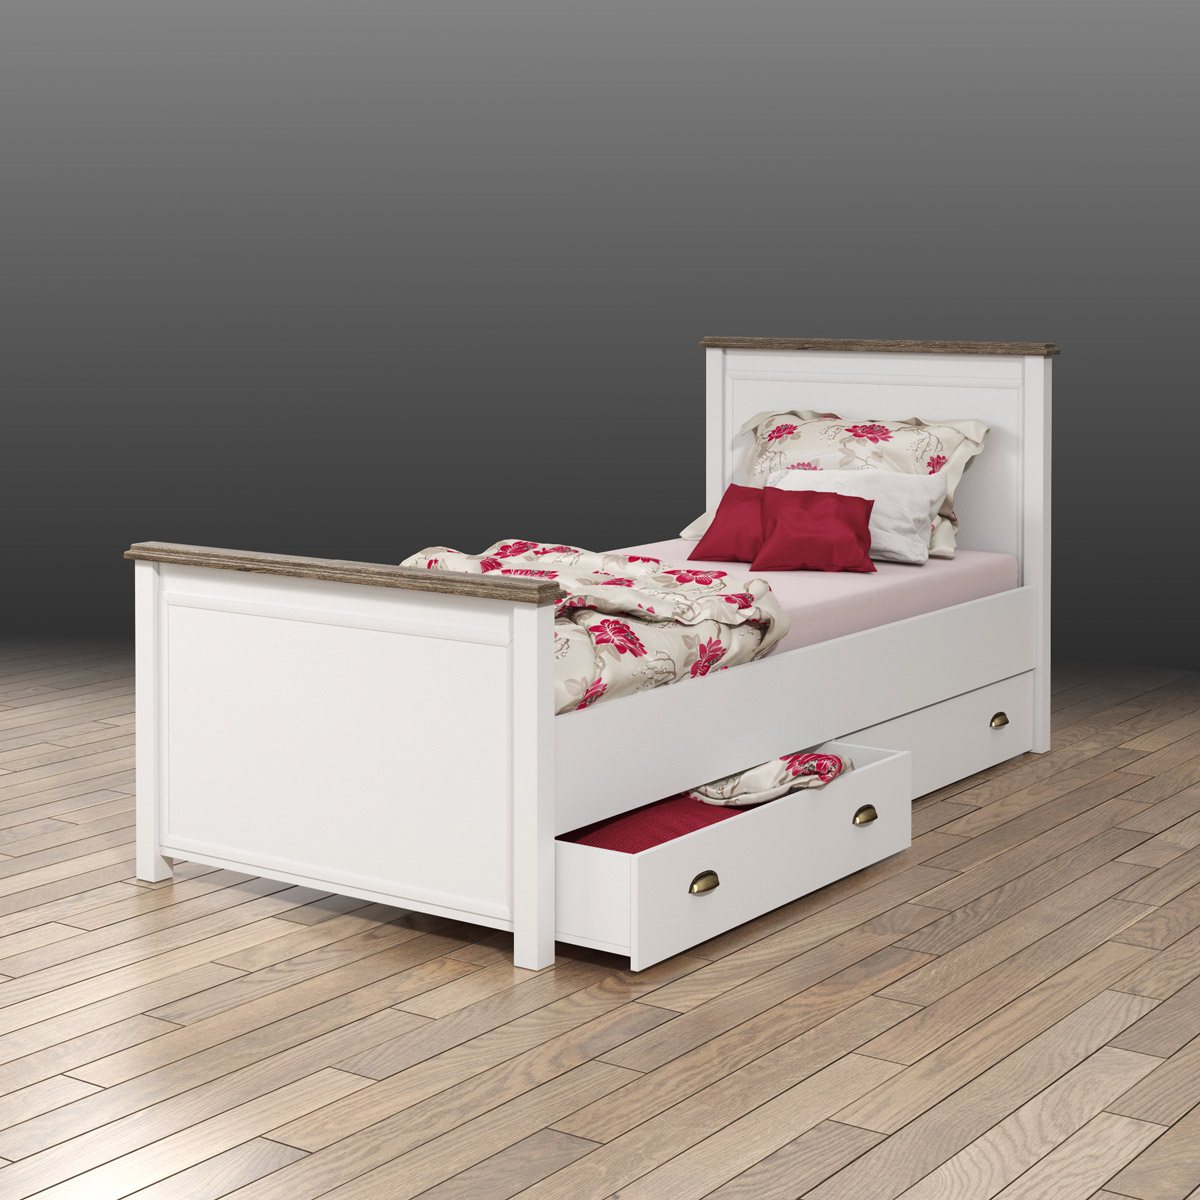 bett chateau einzelbett kinderzimmerbett wei san remo eiche 90x200 ebay. Black Bedroom Furniture Sets. Home Design Ideas